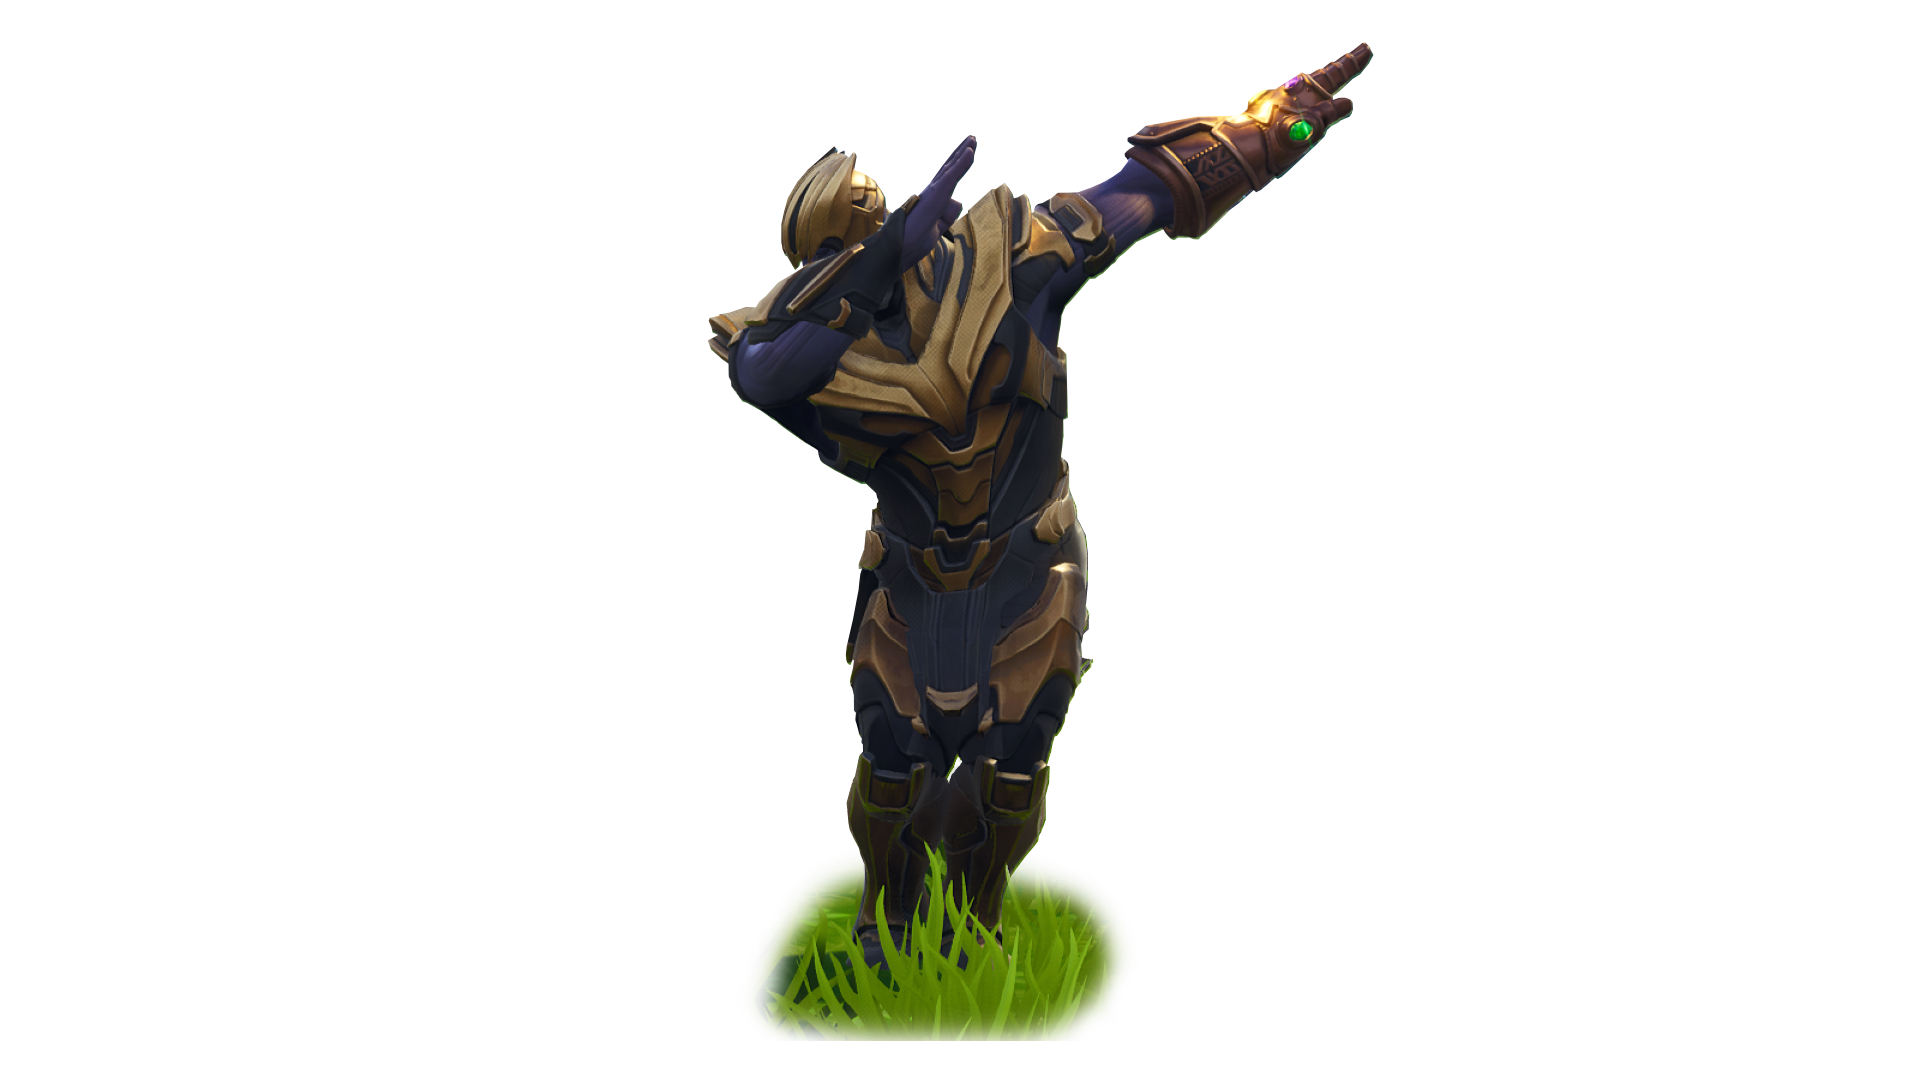 Fortnite Thanos Dab Png Image Png Images Fortnite Png